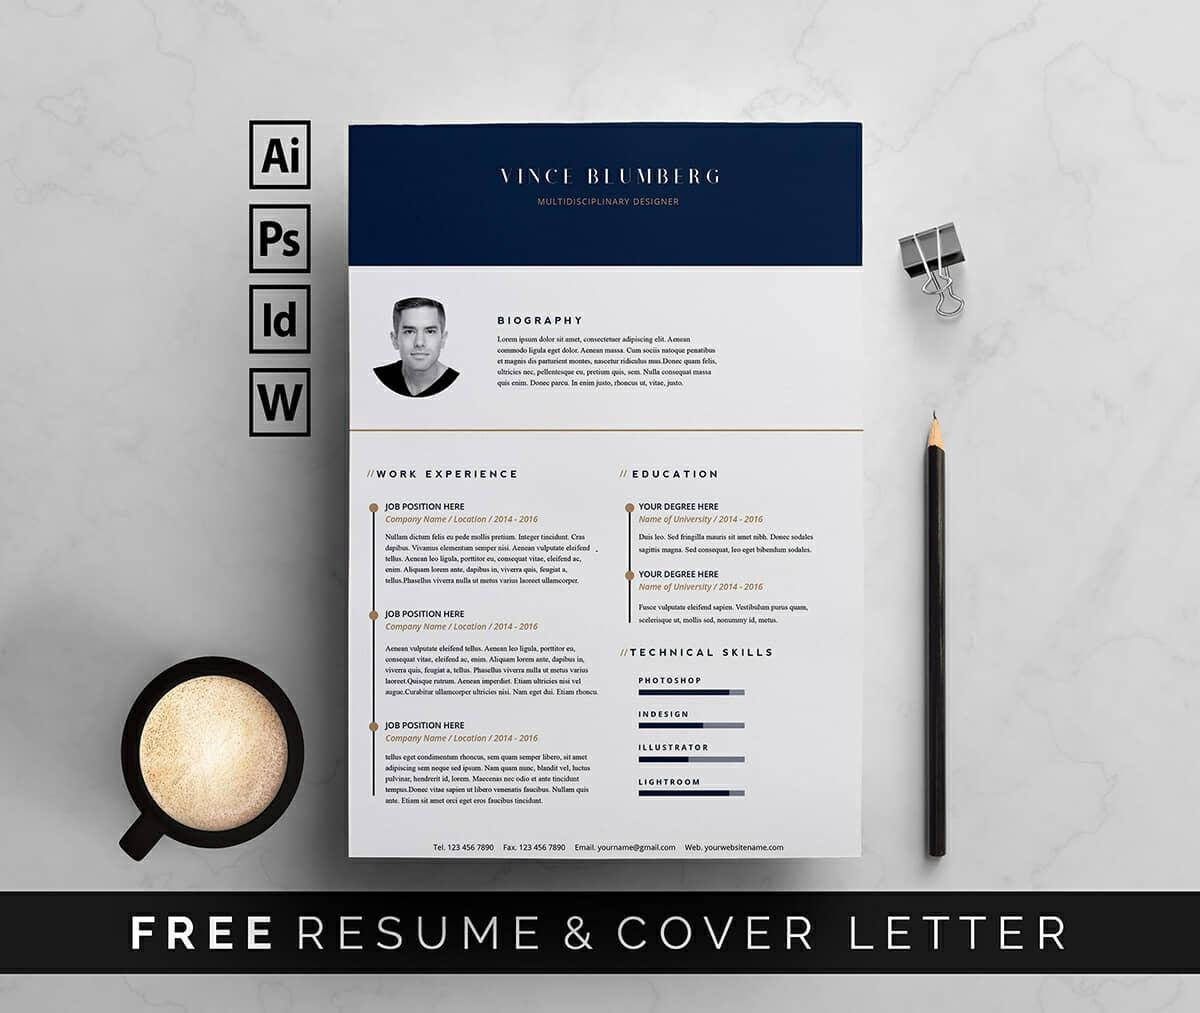 High Quality Resume Templates For Word (FREE): 15+ Examples For Download